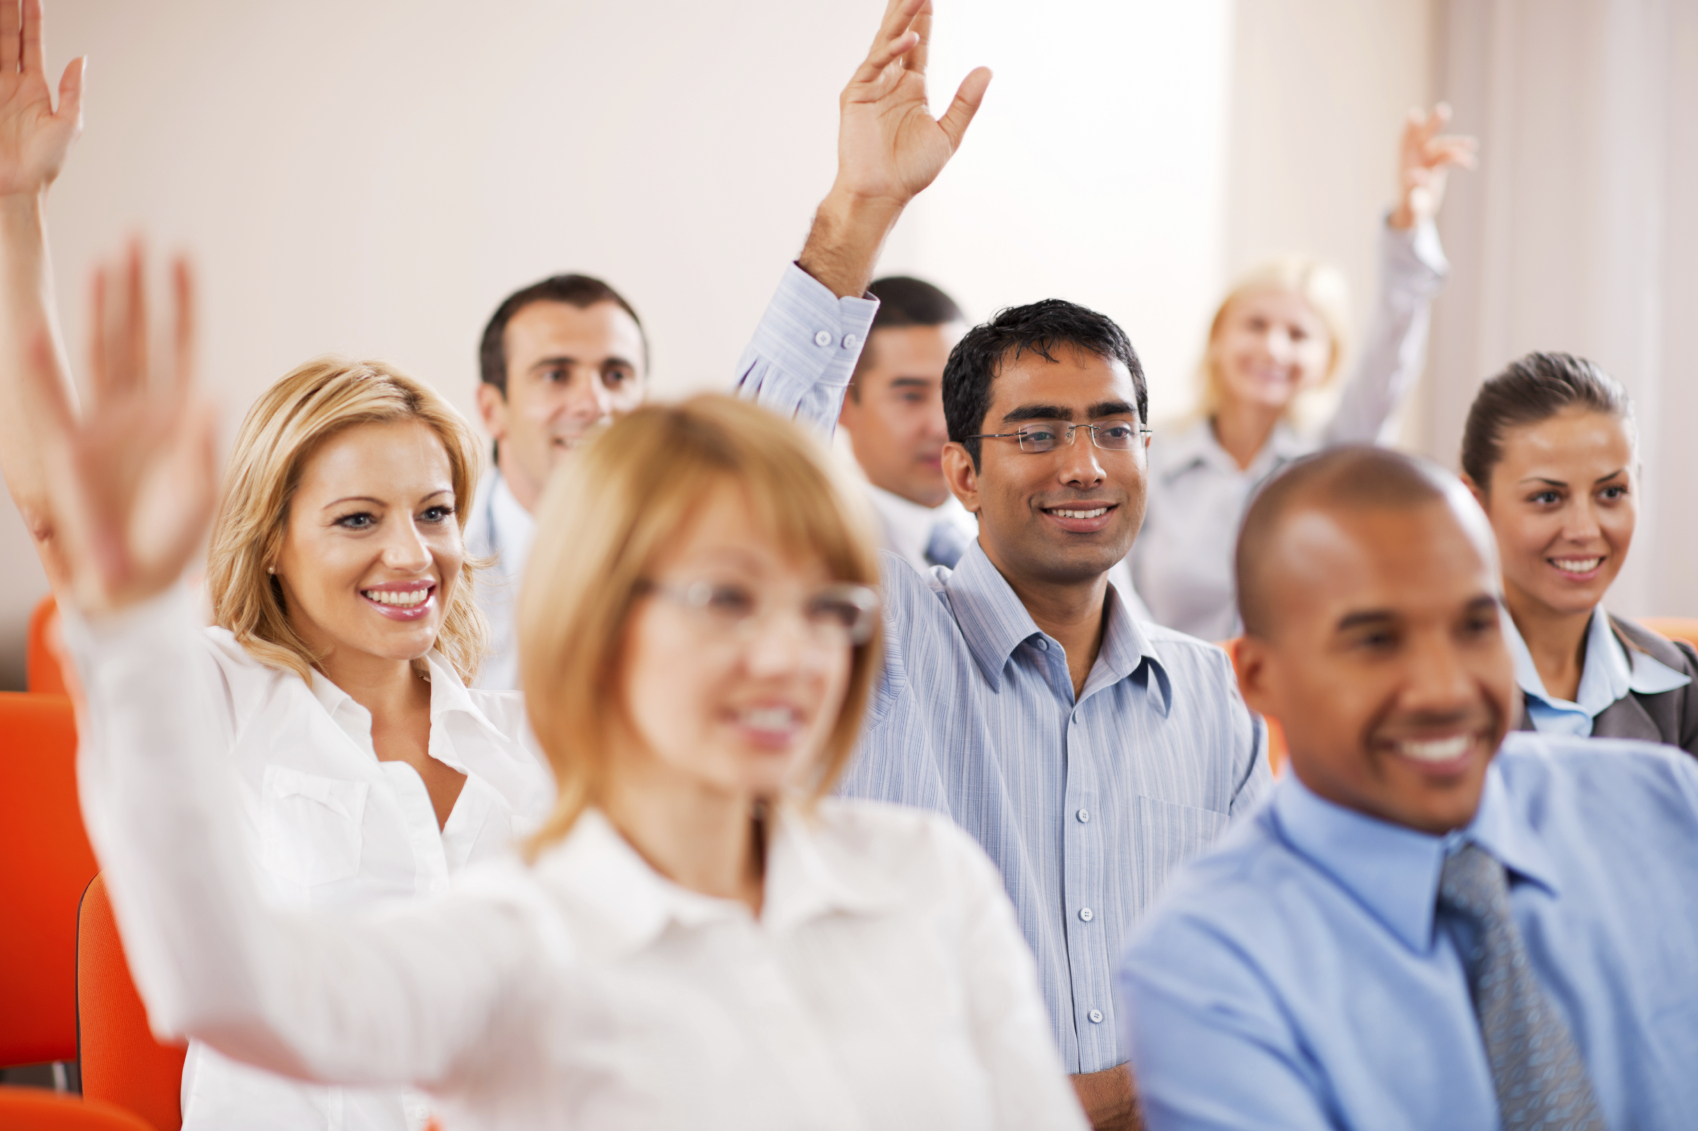 A group of smiling employees are attending a training class and raising their hands to participate.